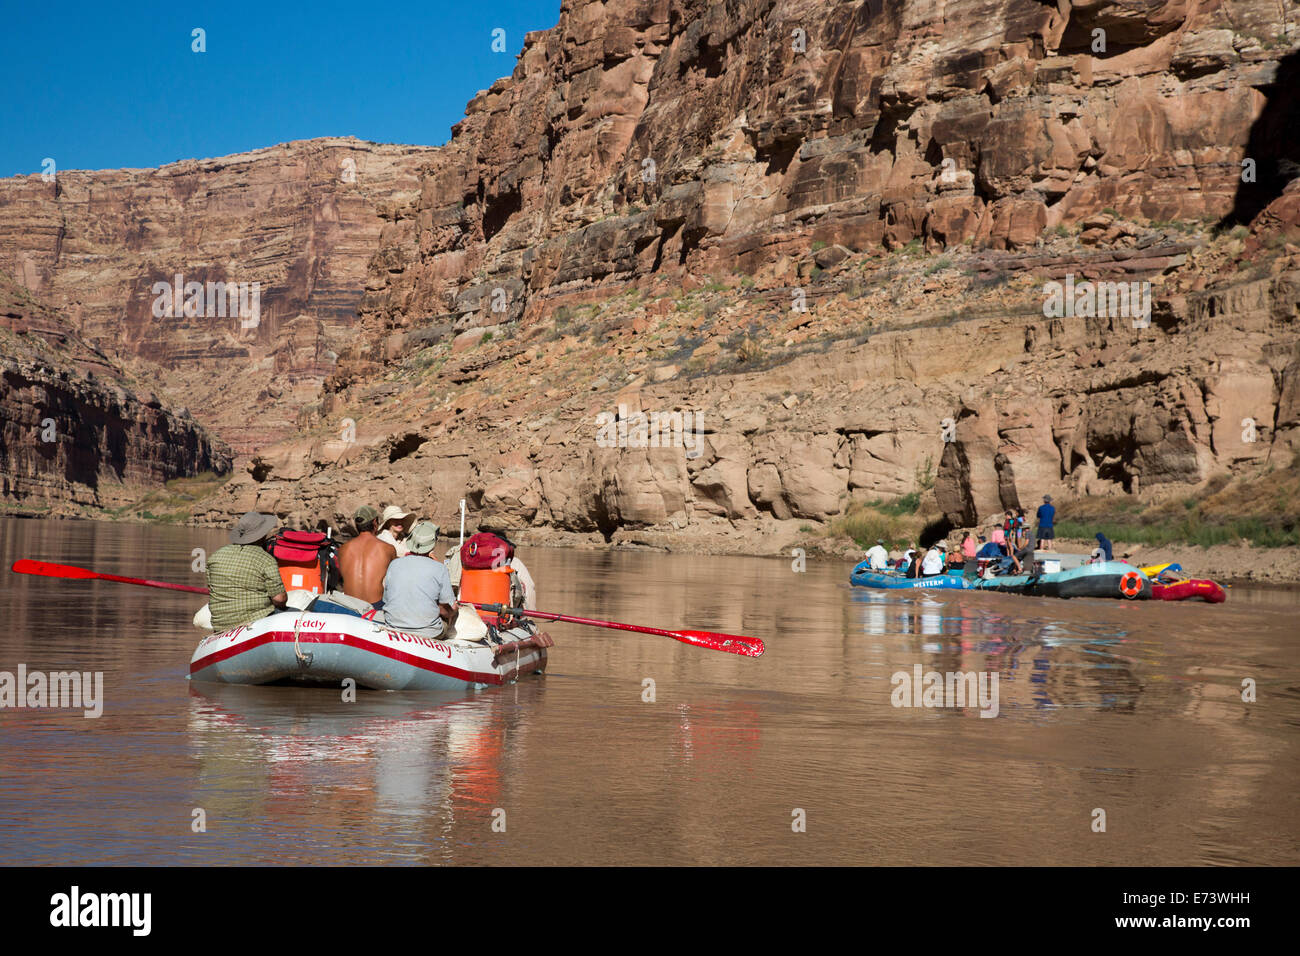 Canyonlands National Park, Utah - Motorized rafts (right) pass an oar boat on the Colorado River in Cataract Canyon - Stock Image